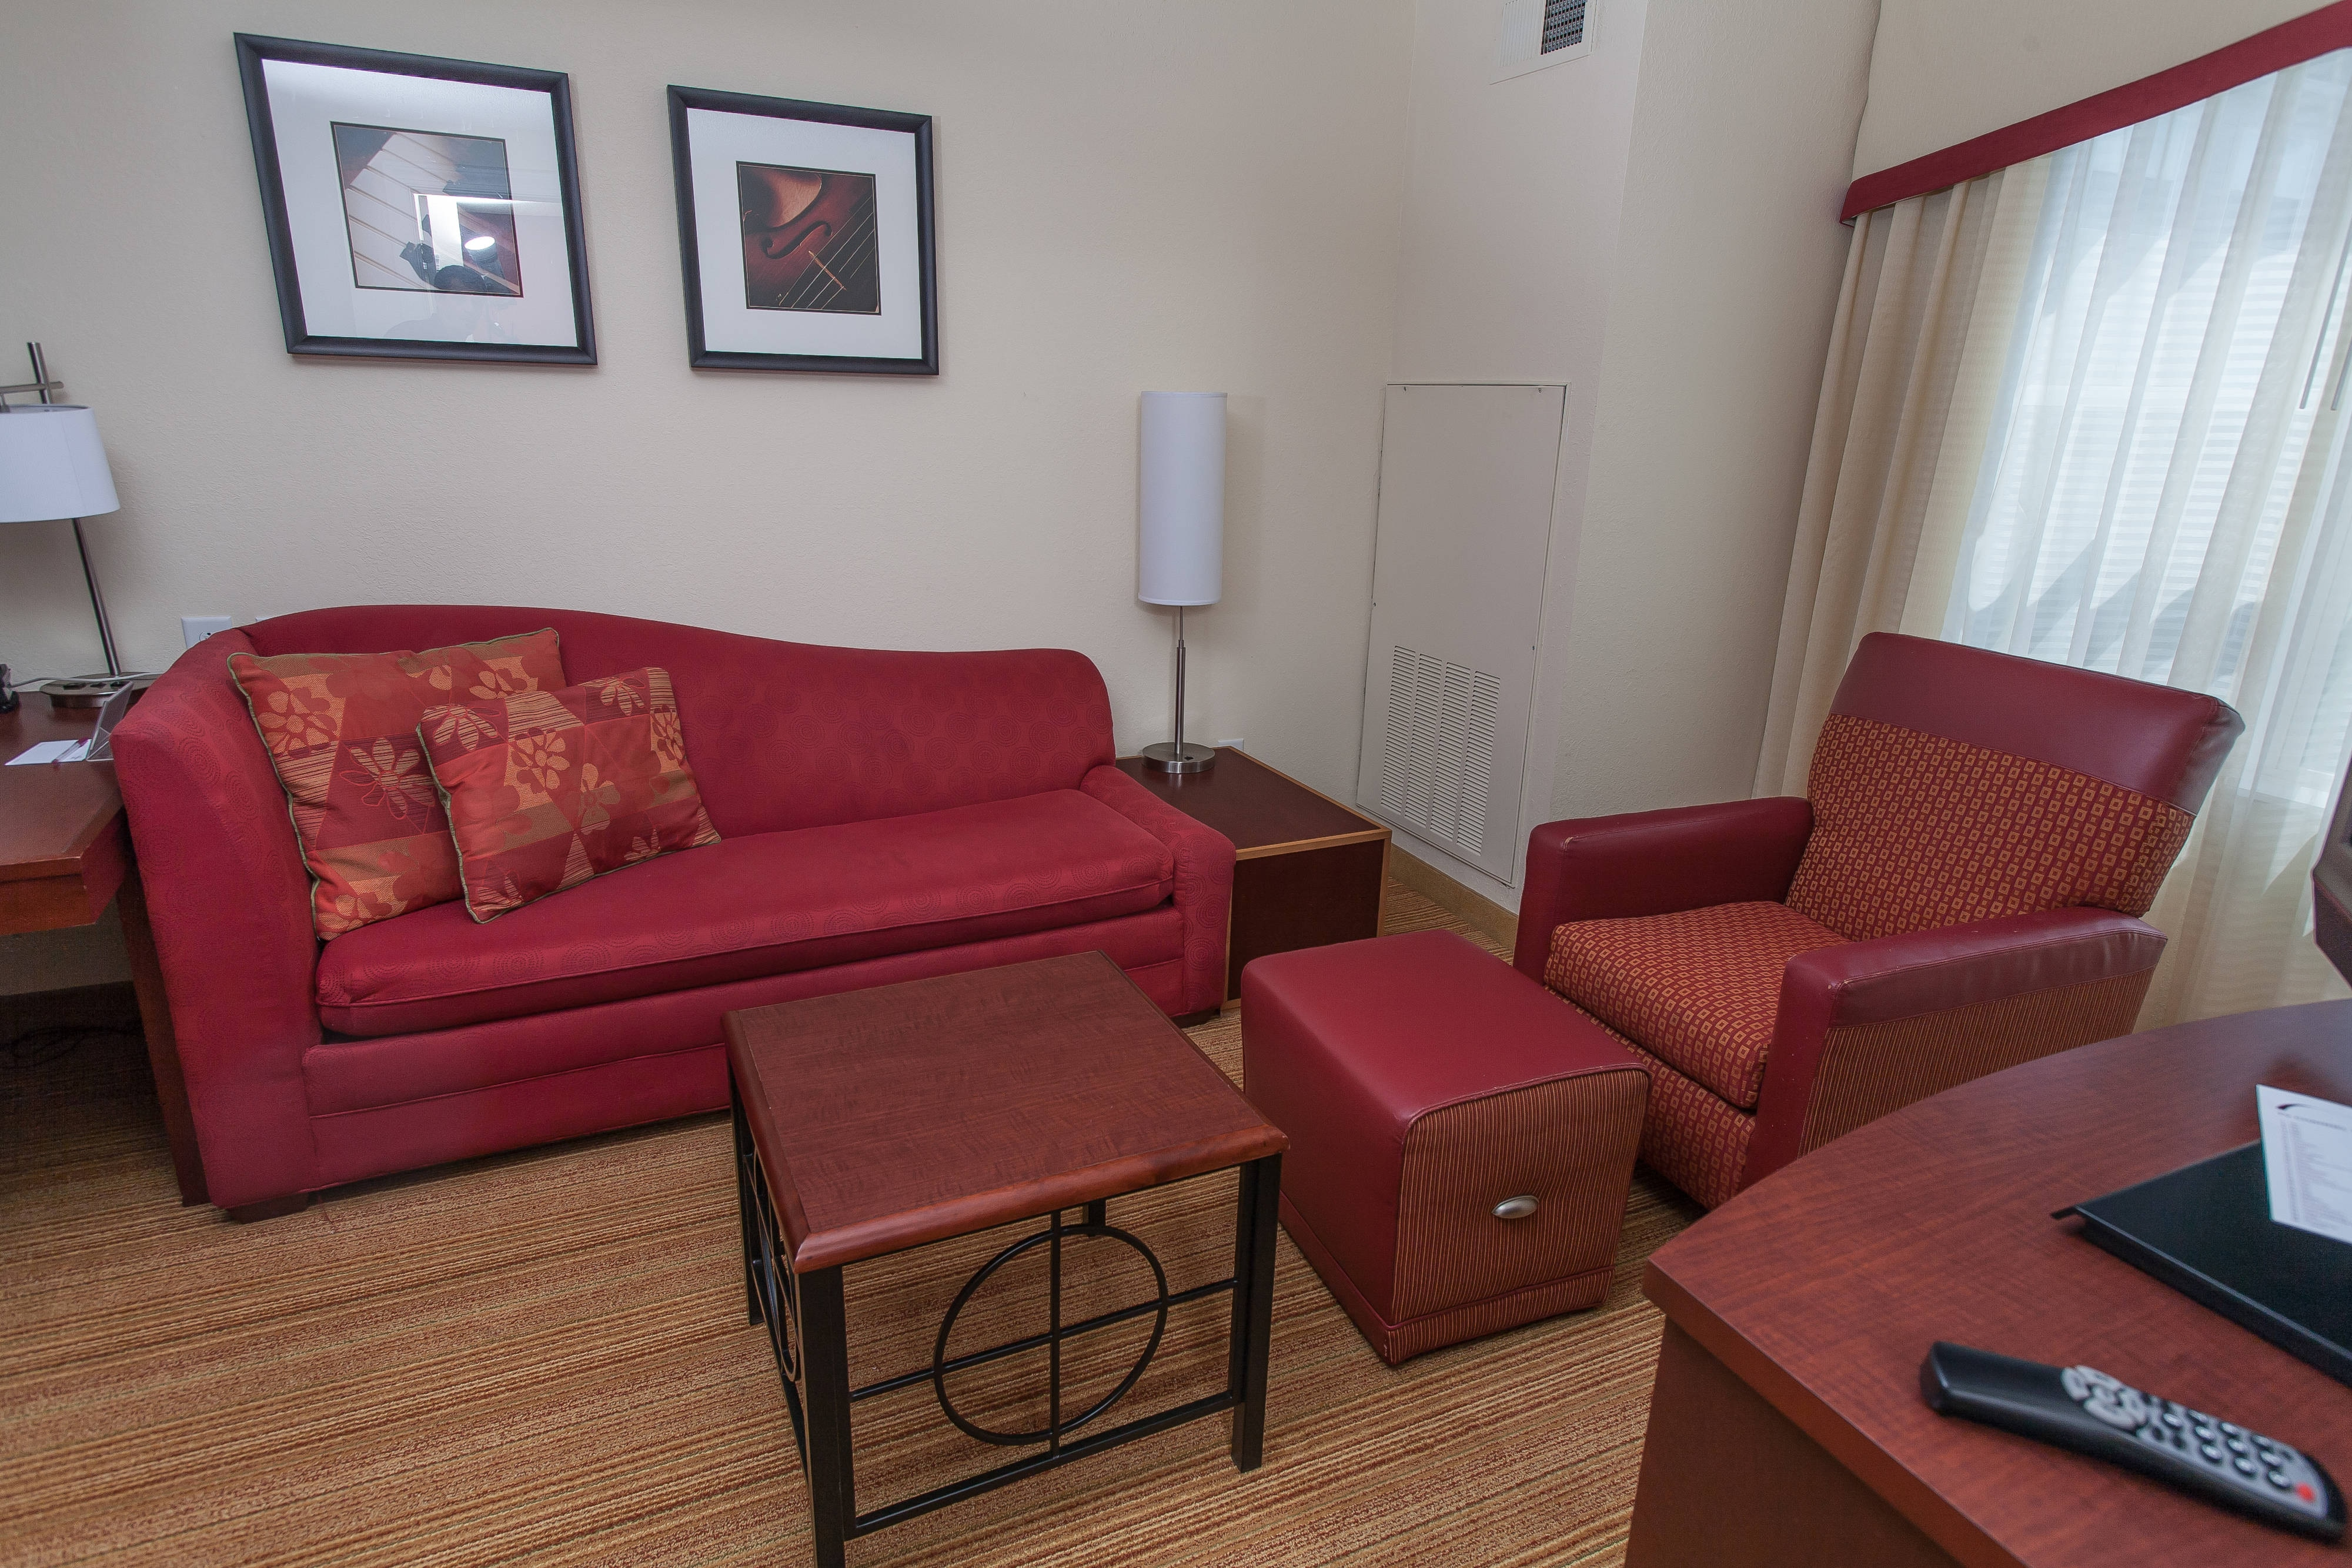 Residence Inn Marriott One Bedroom